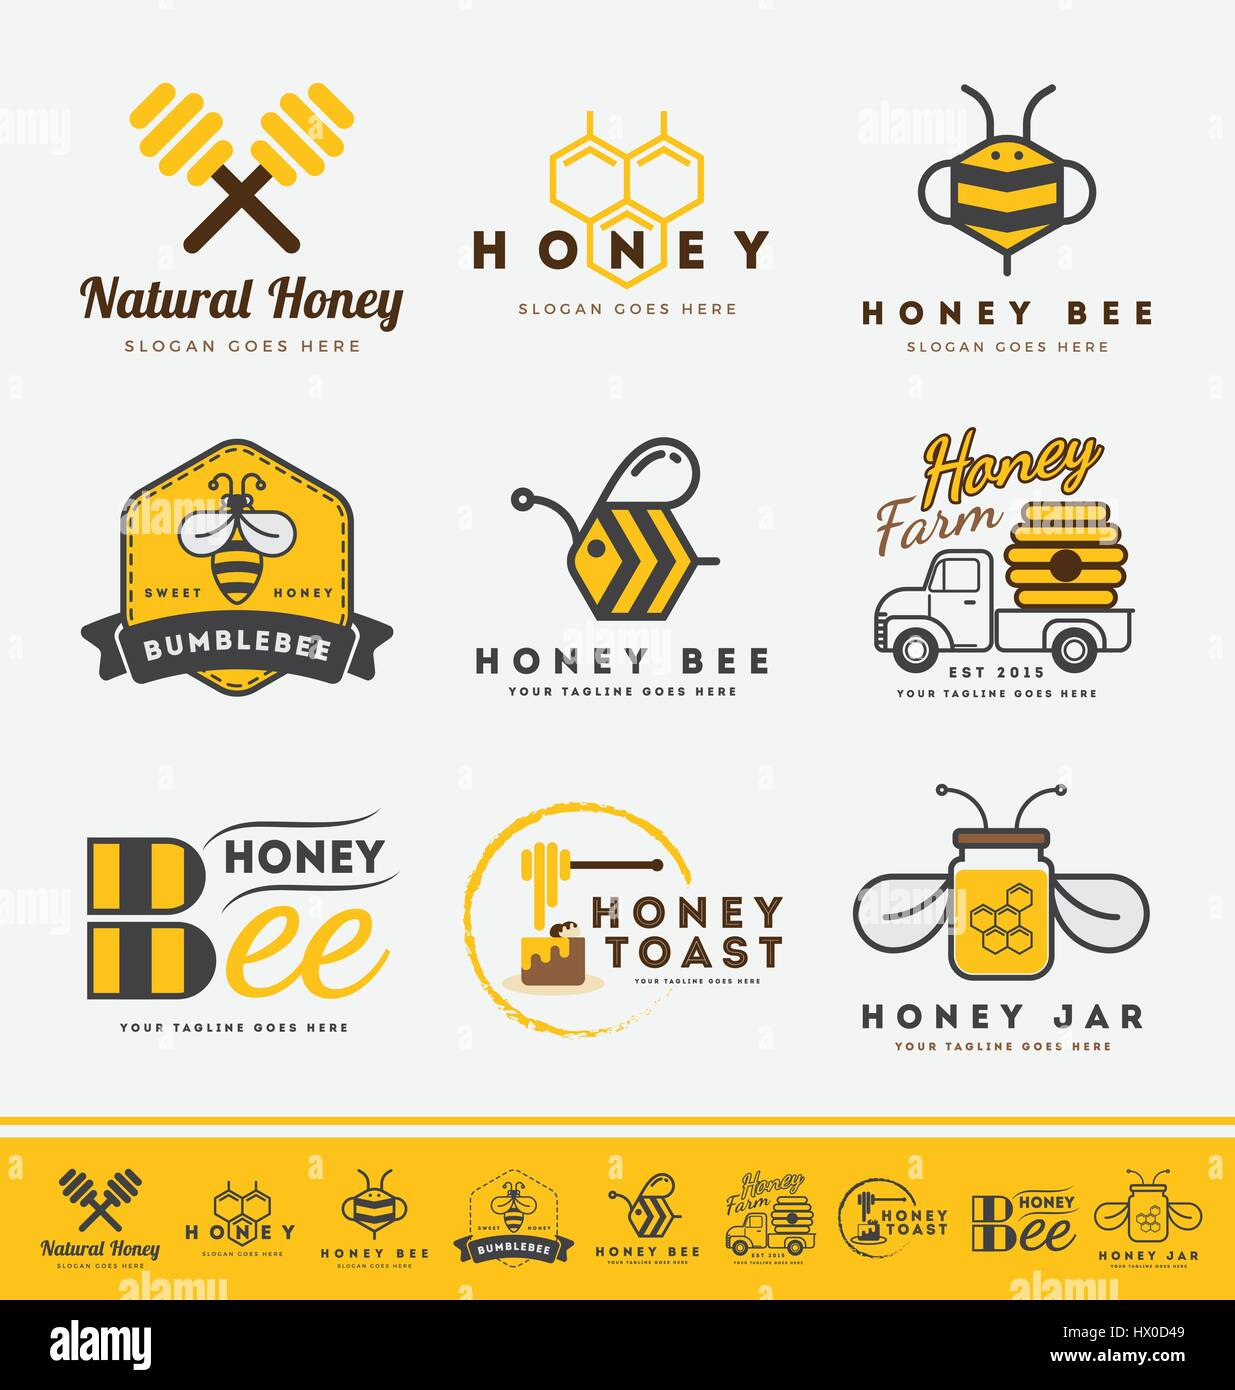 Set of honey bee logo and labels for honey products. Abstract bee and honey logo symbols. Vector illustration - Stock Vector